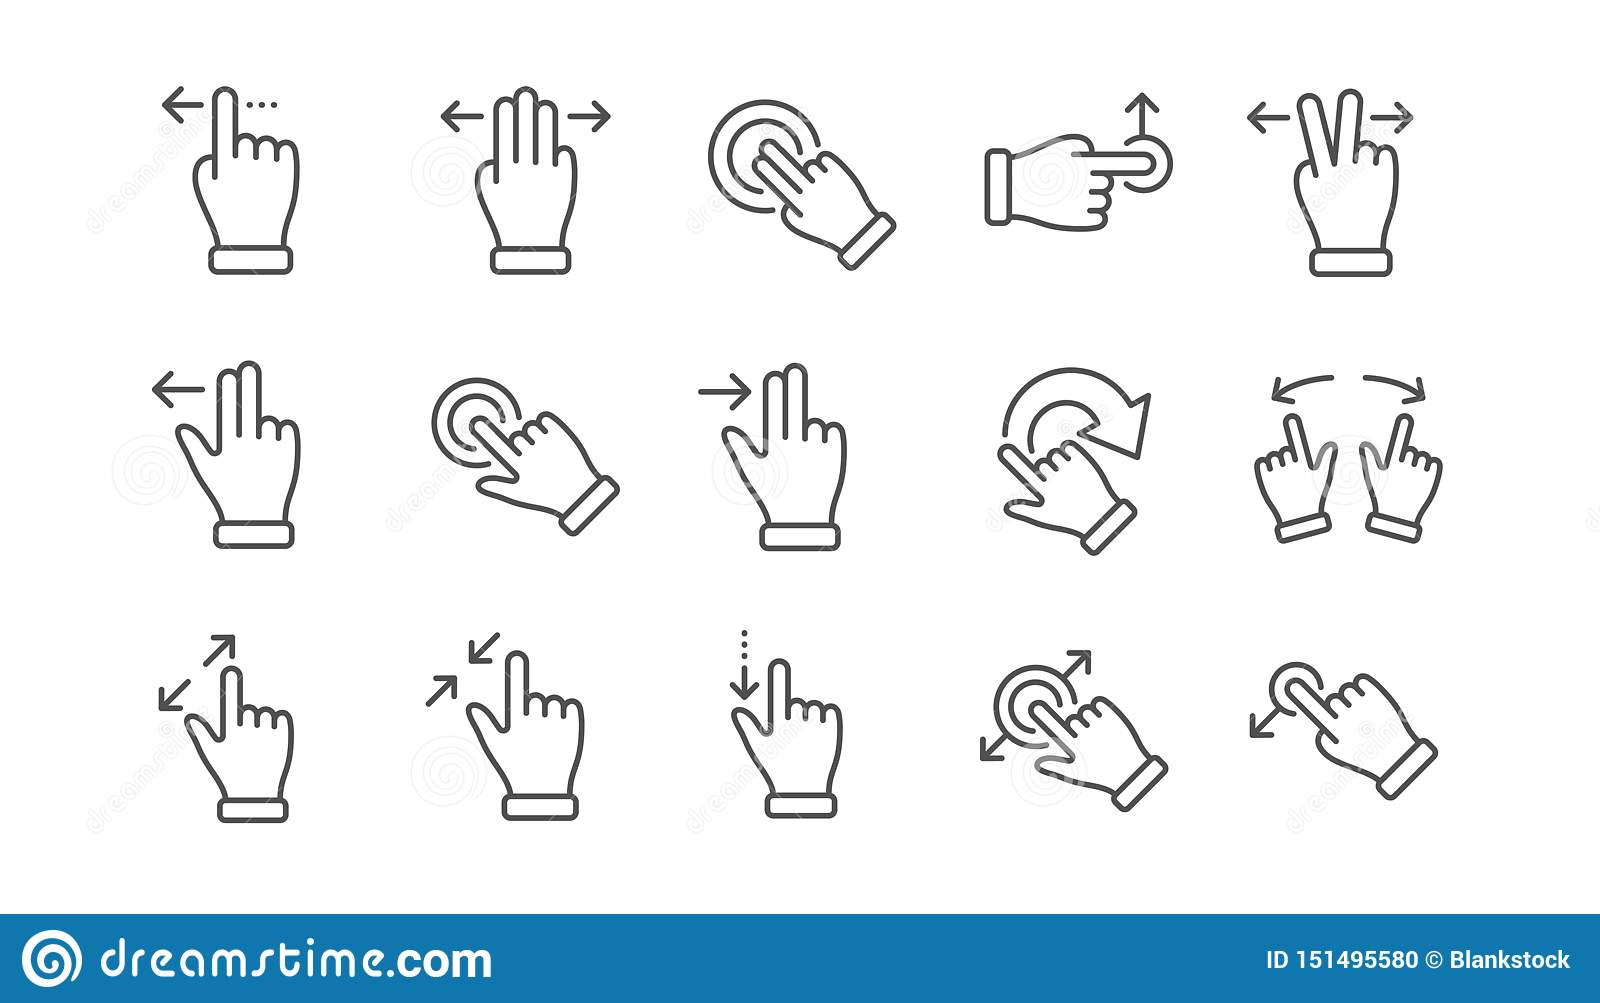 Touchscreen Gesture Line Icons  Hand Swipe, Slide Gesture